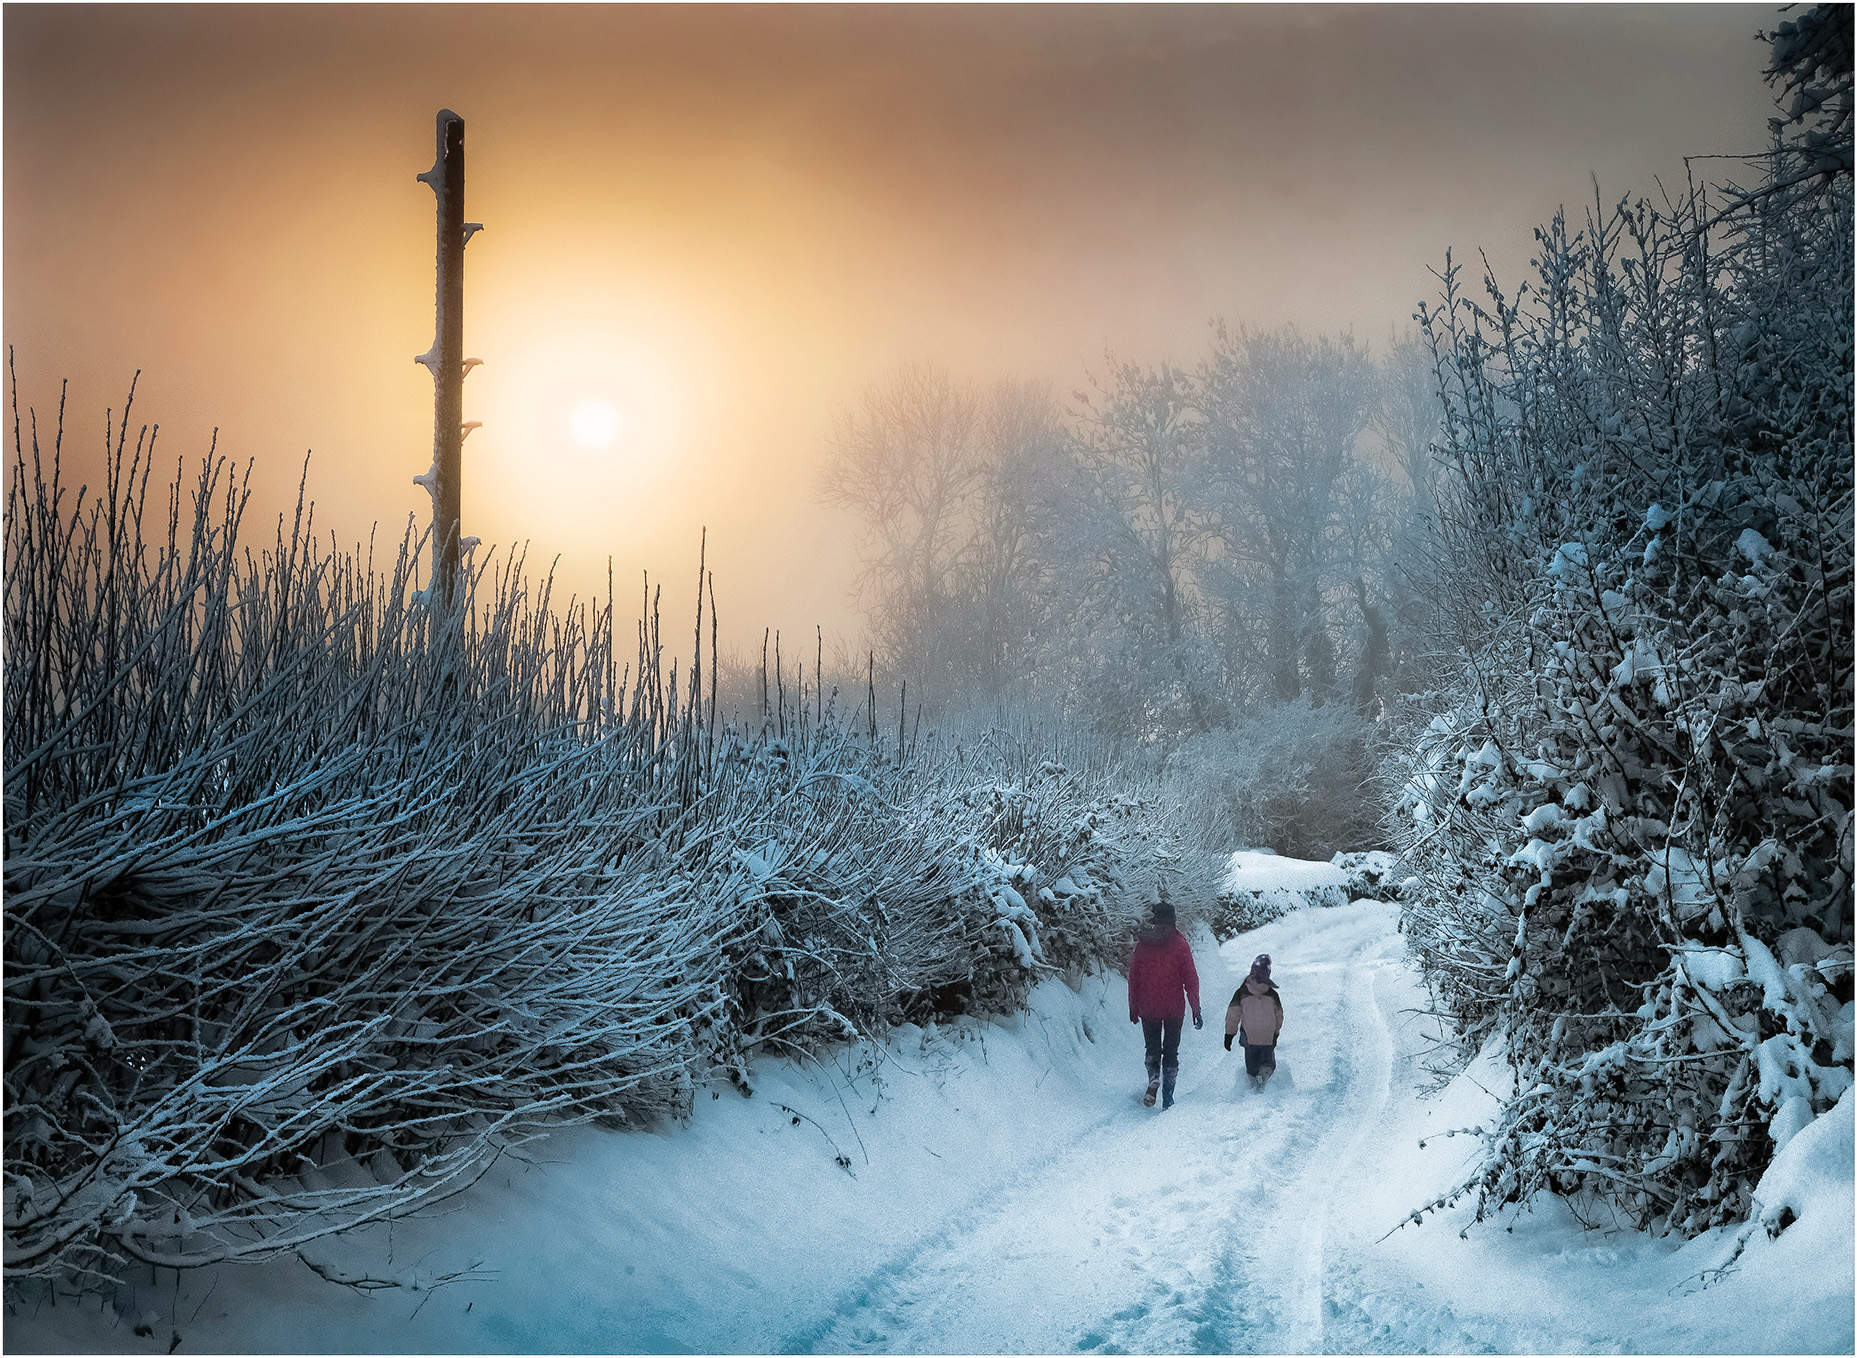 Dreaming of a white Christmas? Why we're so in love with snow